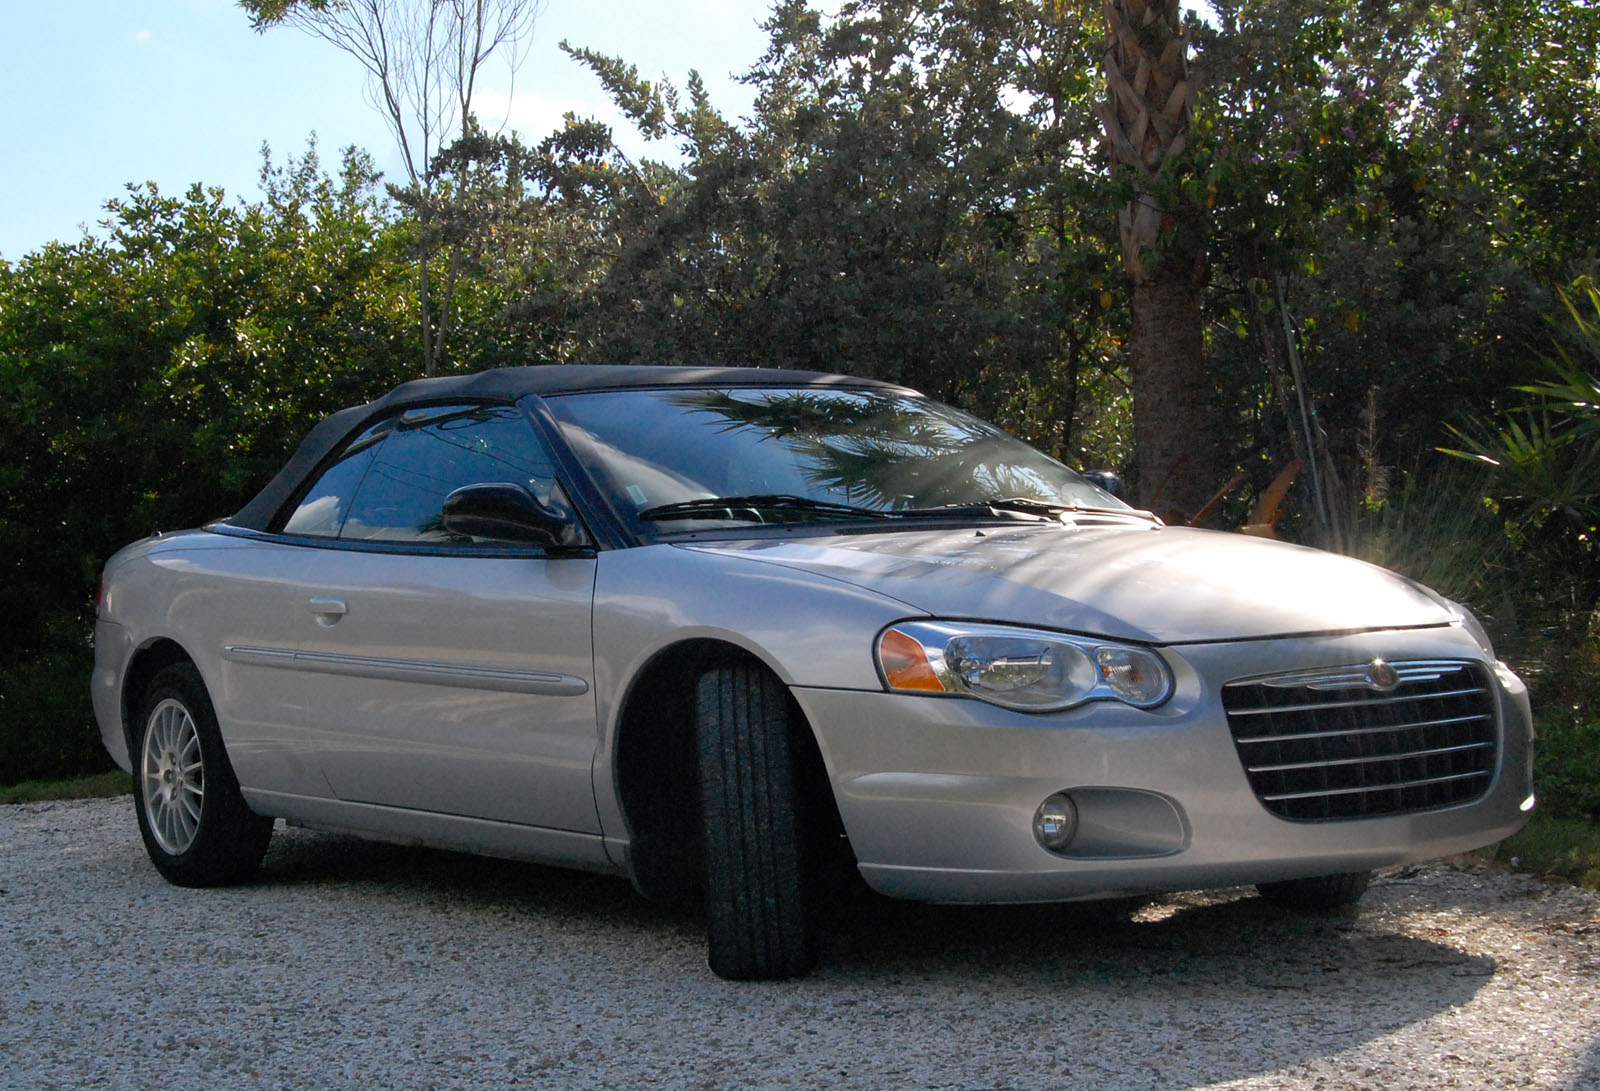 2005 Chrysler Sebring Touring Convertible picture